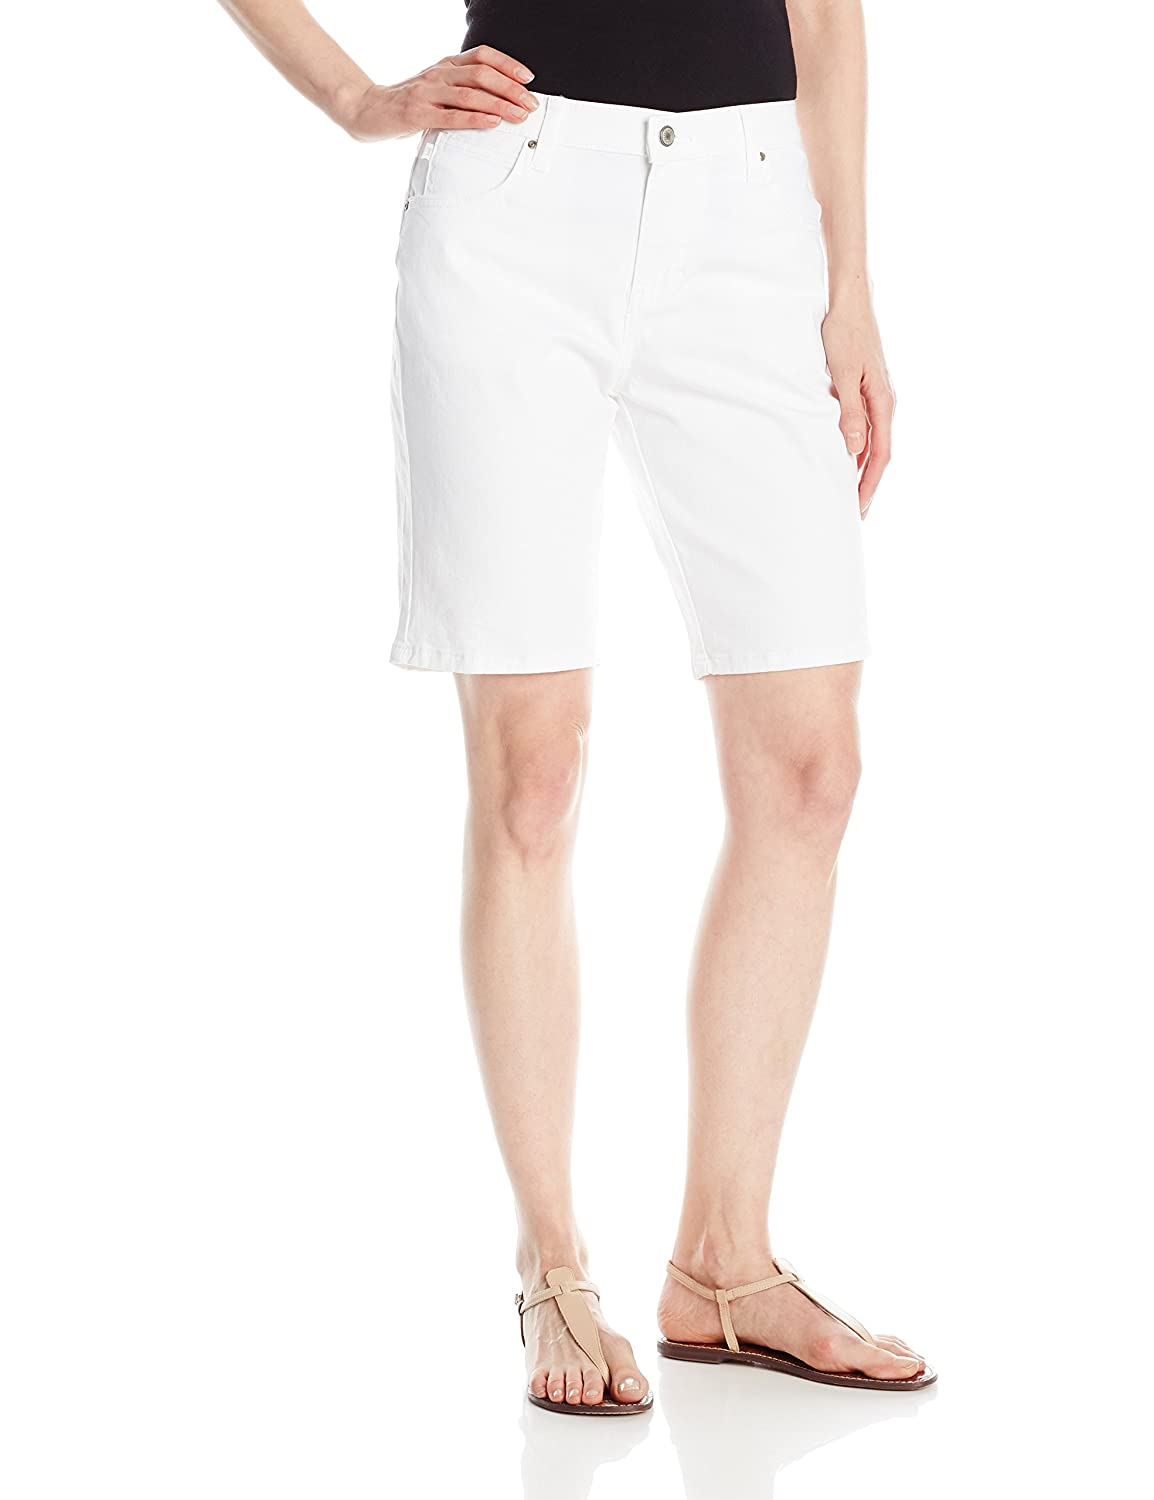 LEE Women's Relaxed-Fit Bermuda Short Lee Women's Collection 37797